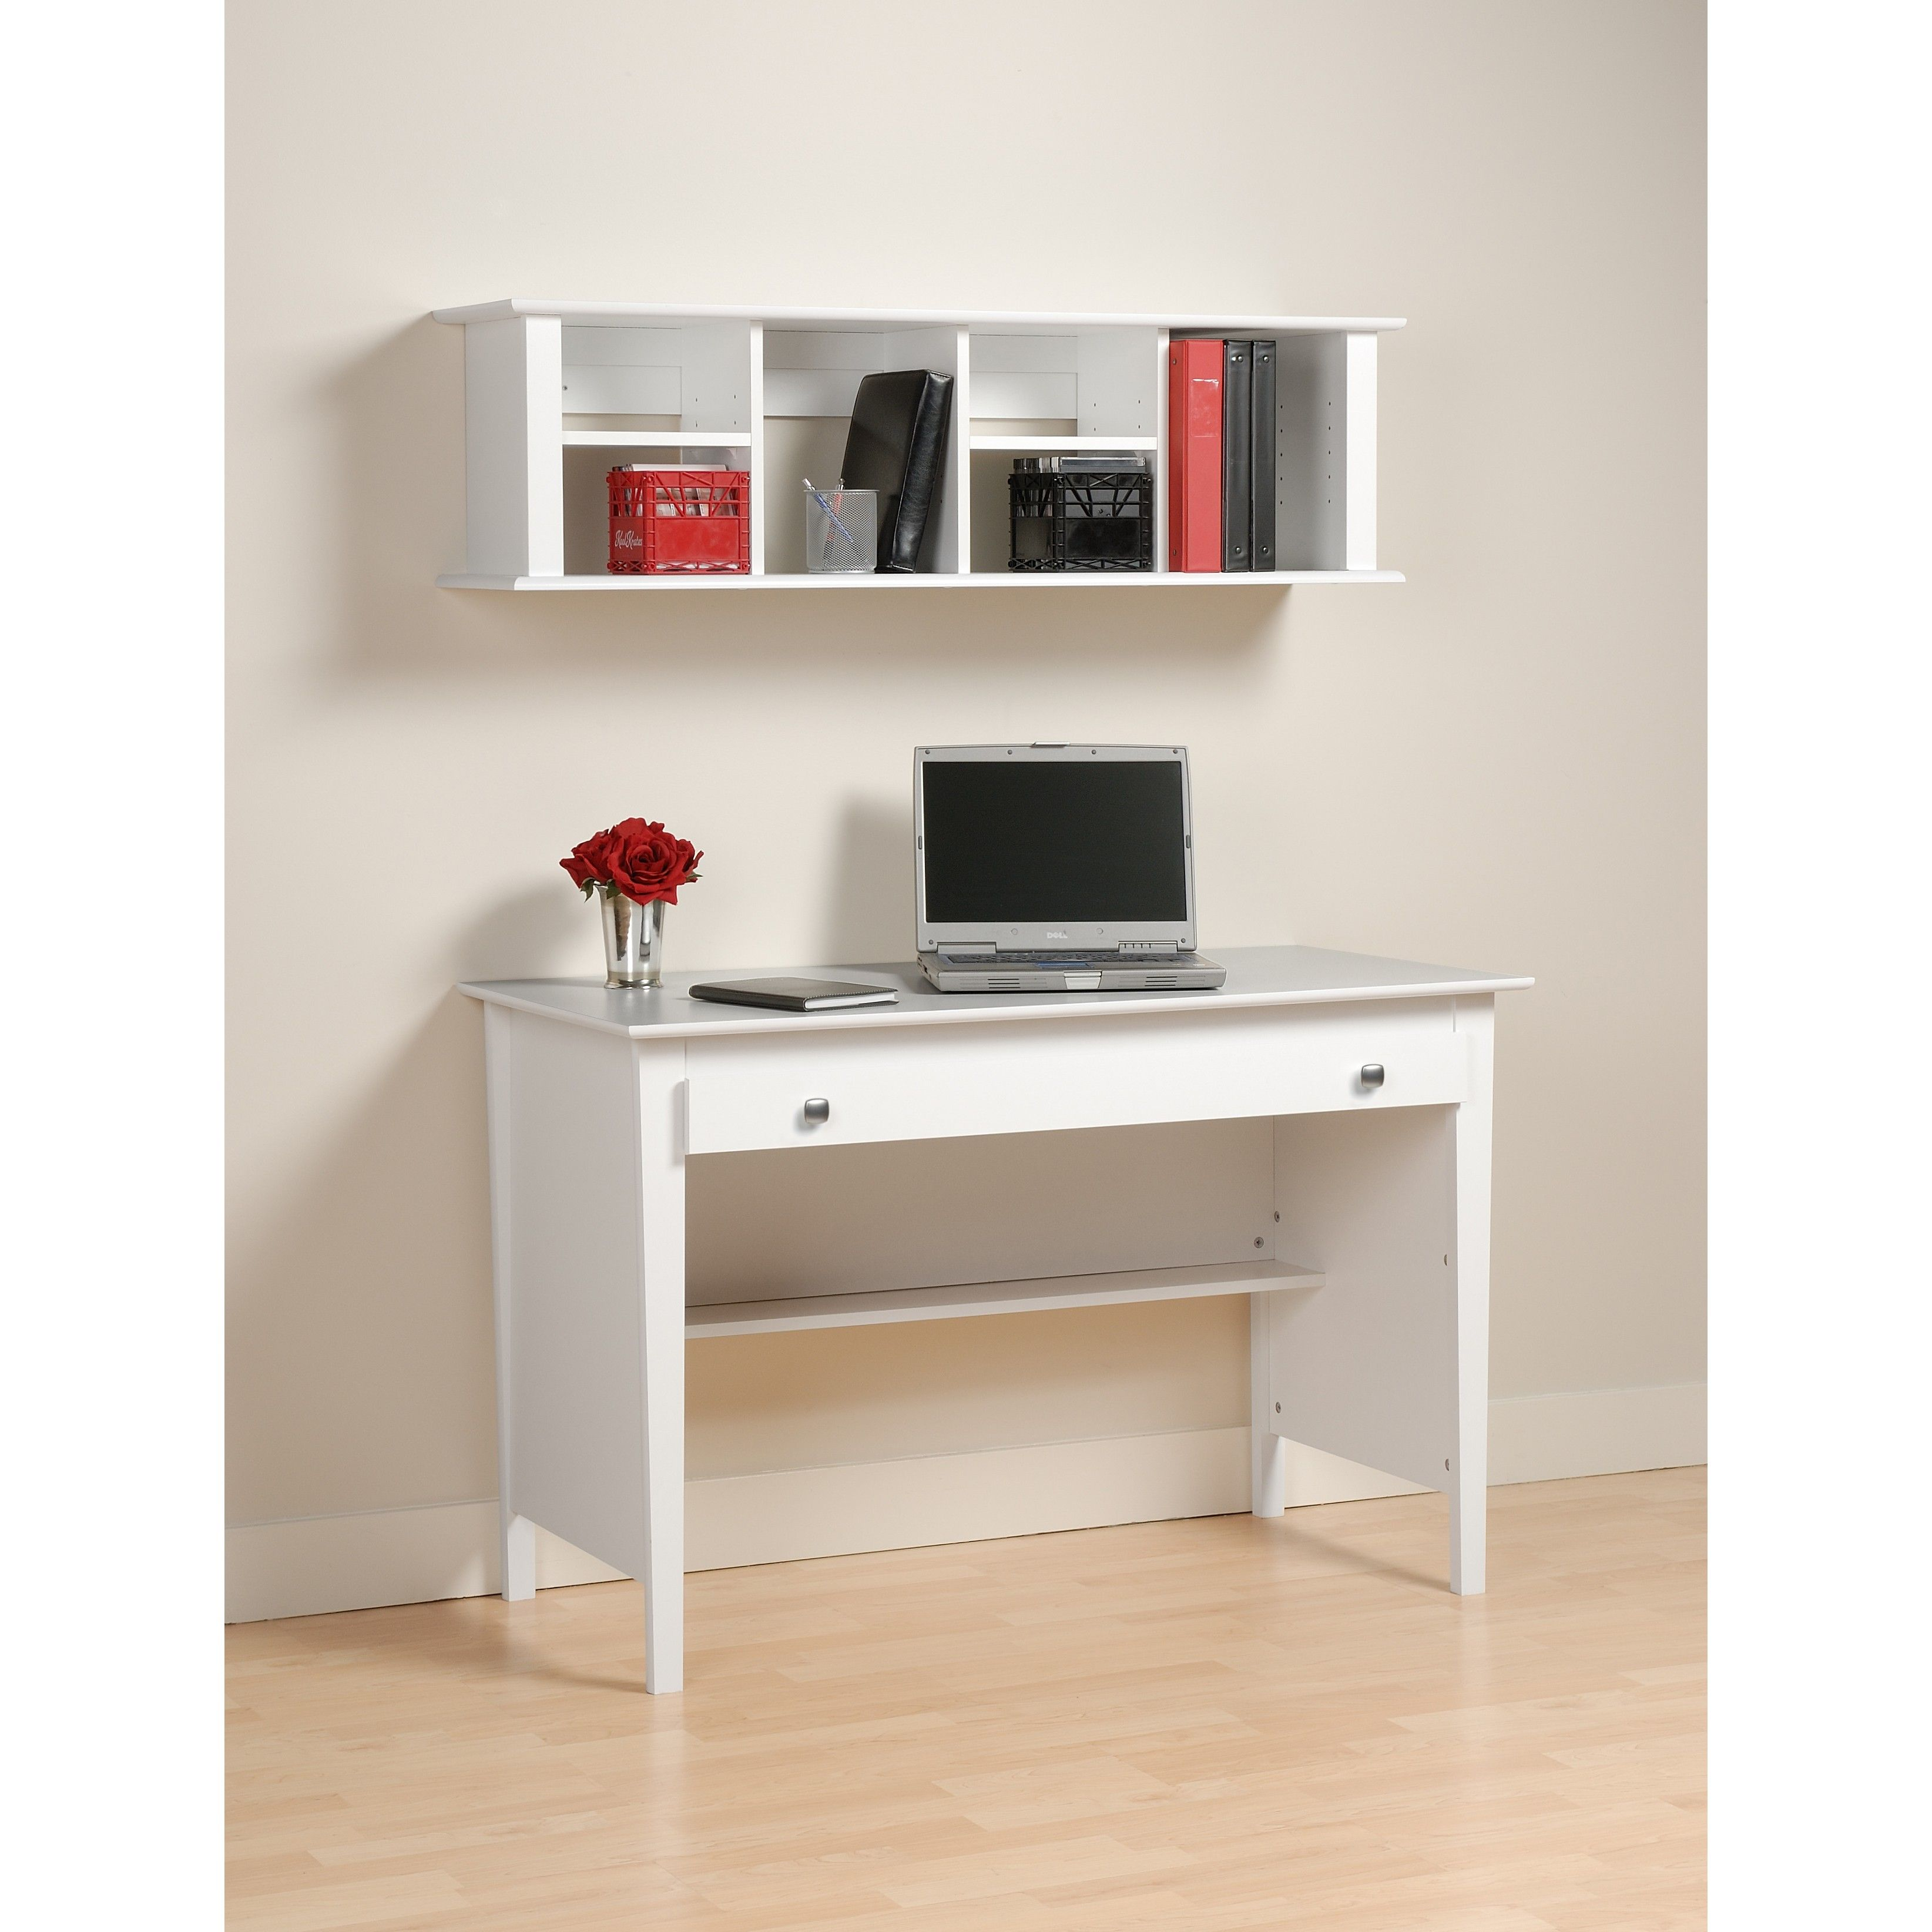 Best Corner Computer Desk Ideas For Your Home Desks for